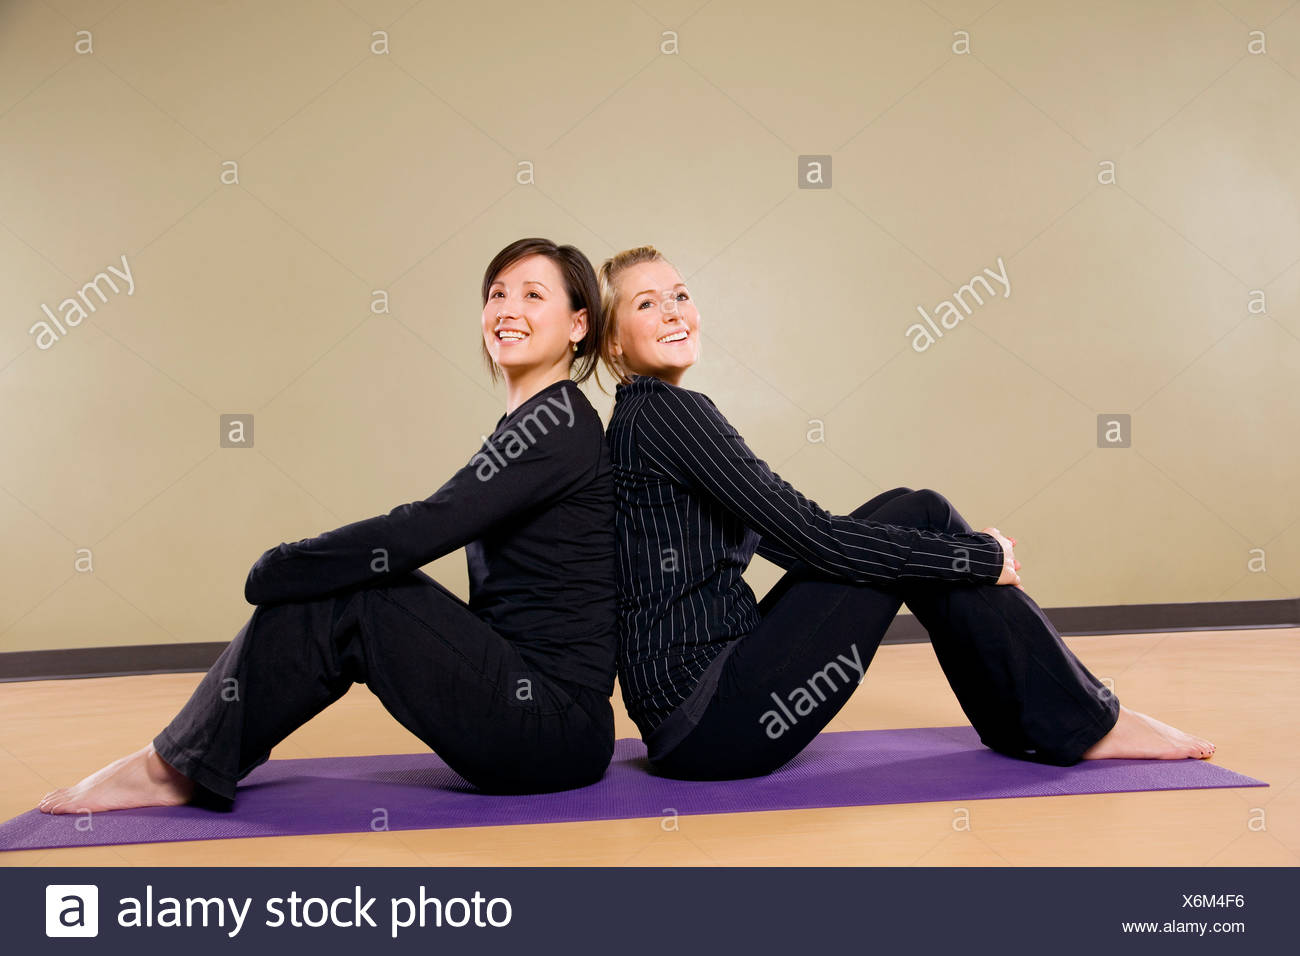 Two women sitting back to back - Stock Image